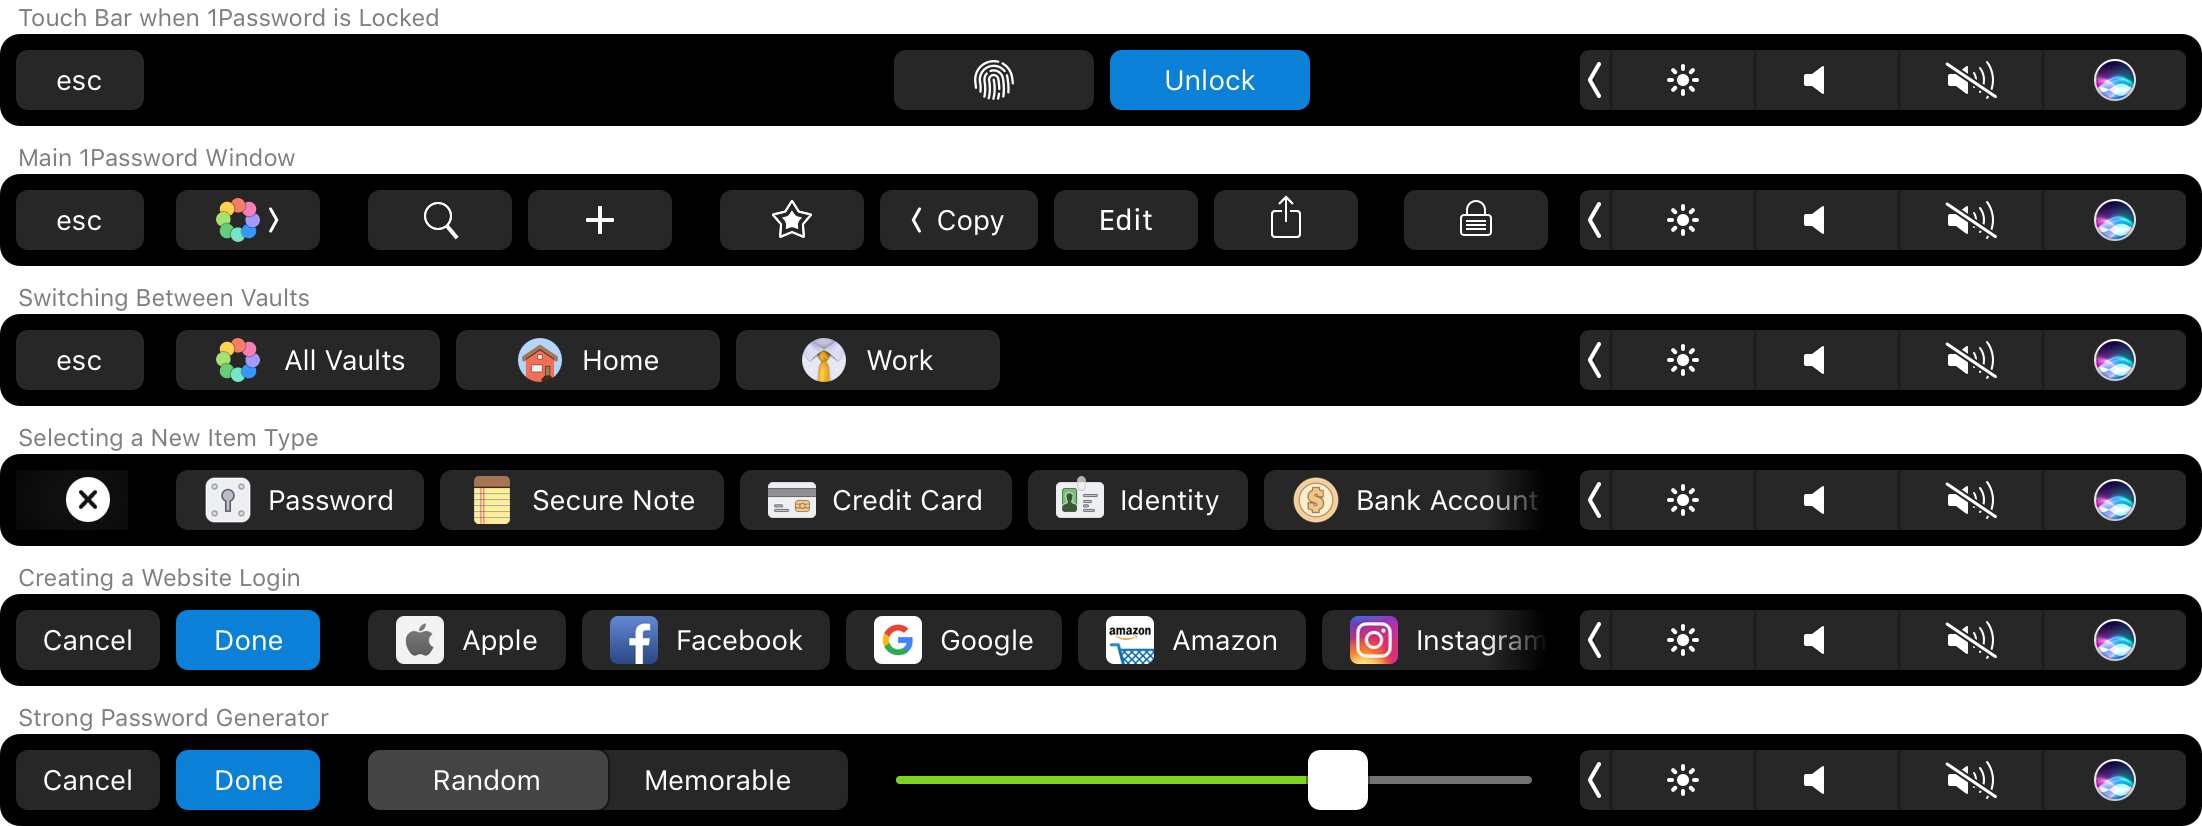 1password-Touch Bar